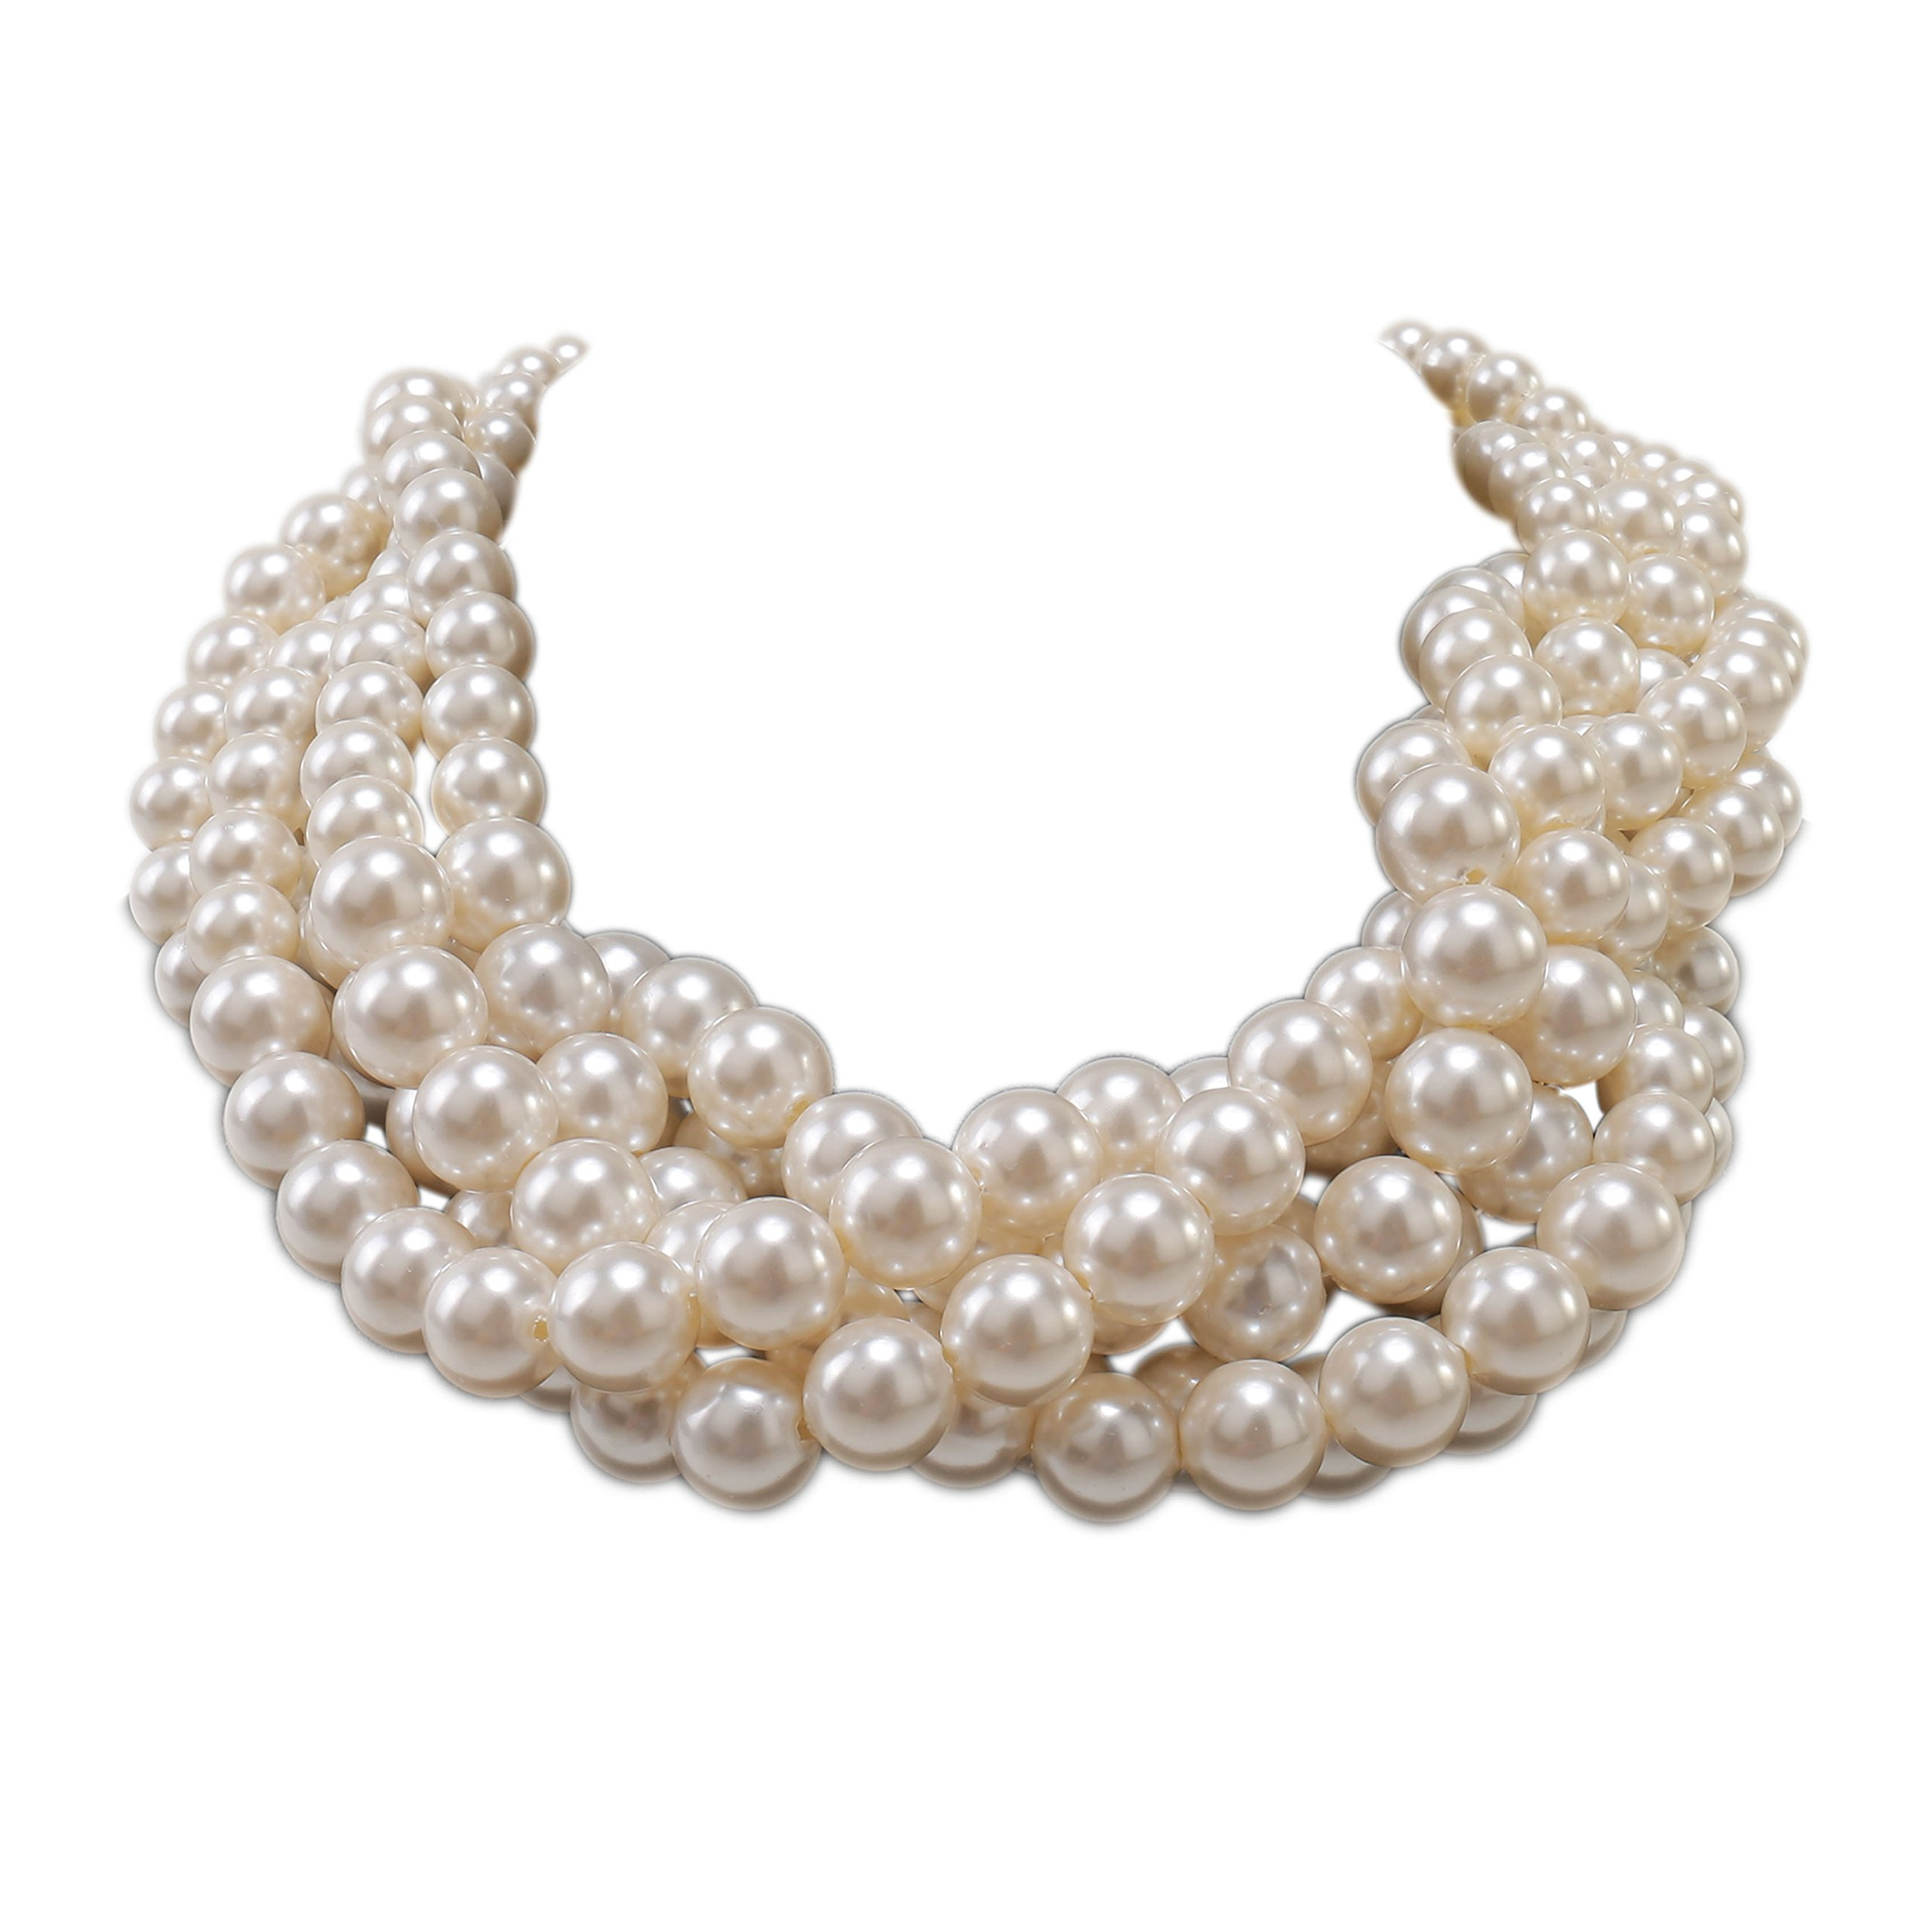 Kalse Simulated Pearl White Beads Cluster Statement Chunky Bib Short Choker Necklace 16 17 18 inch